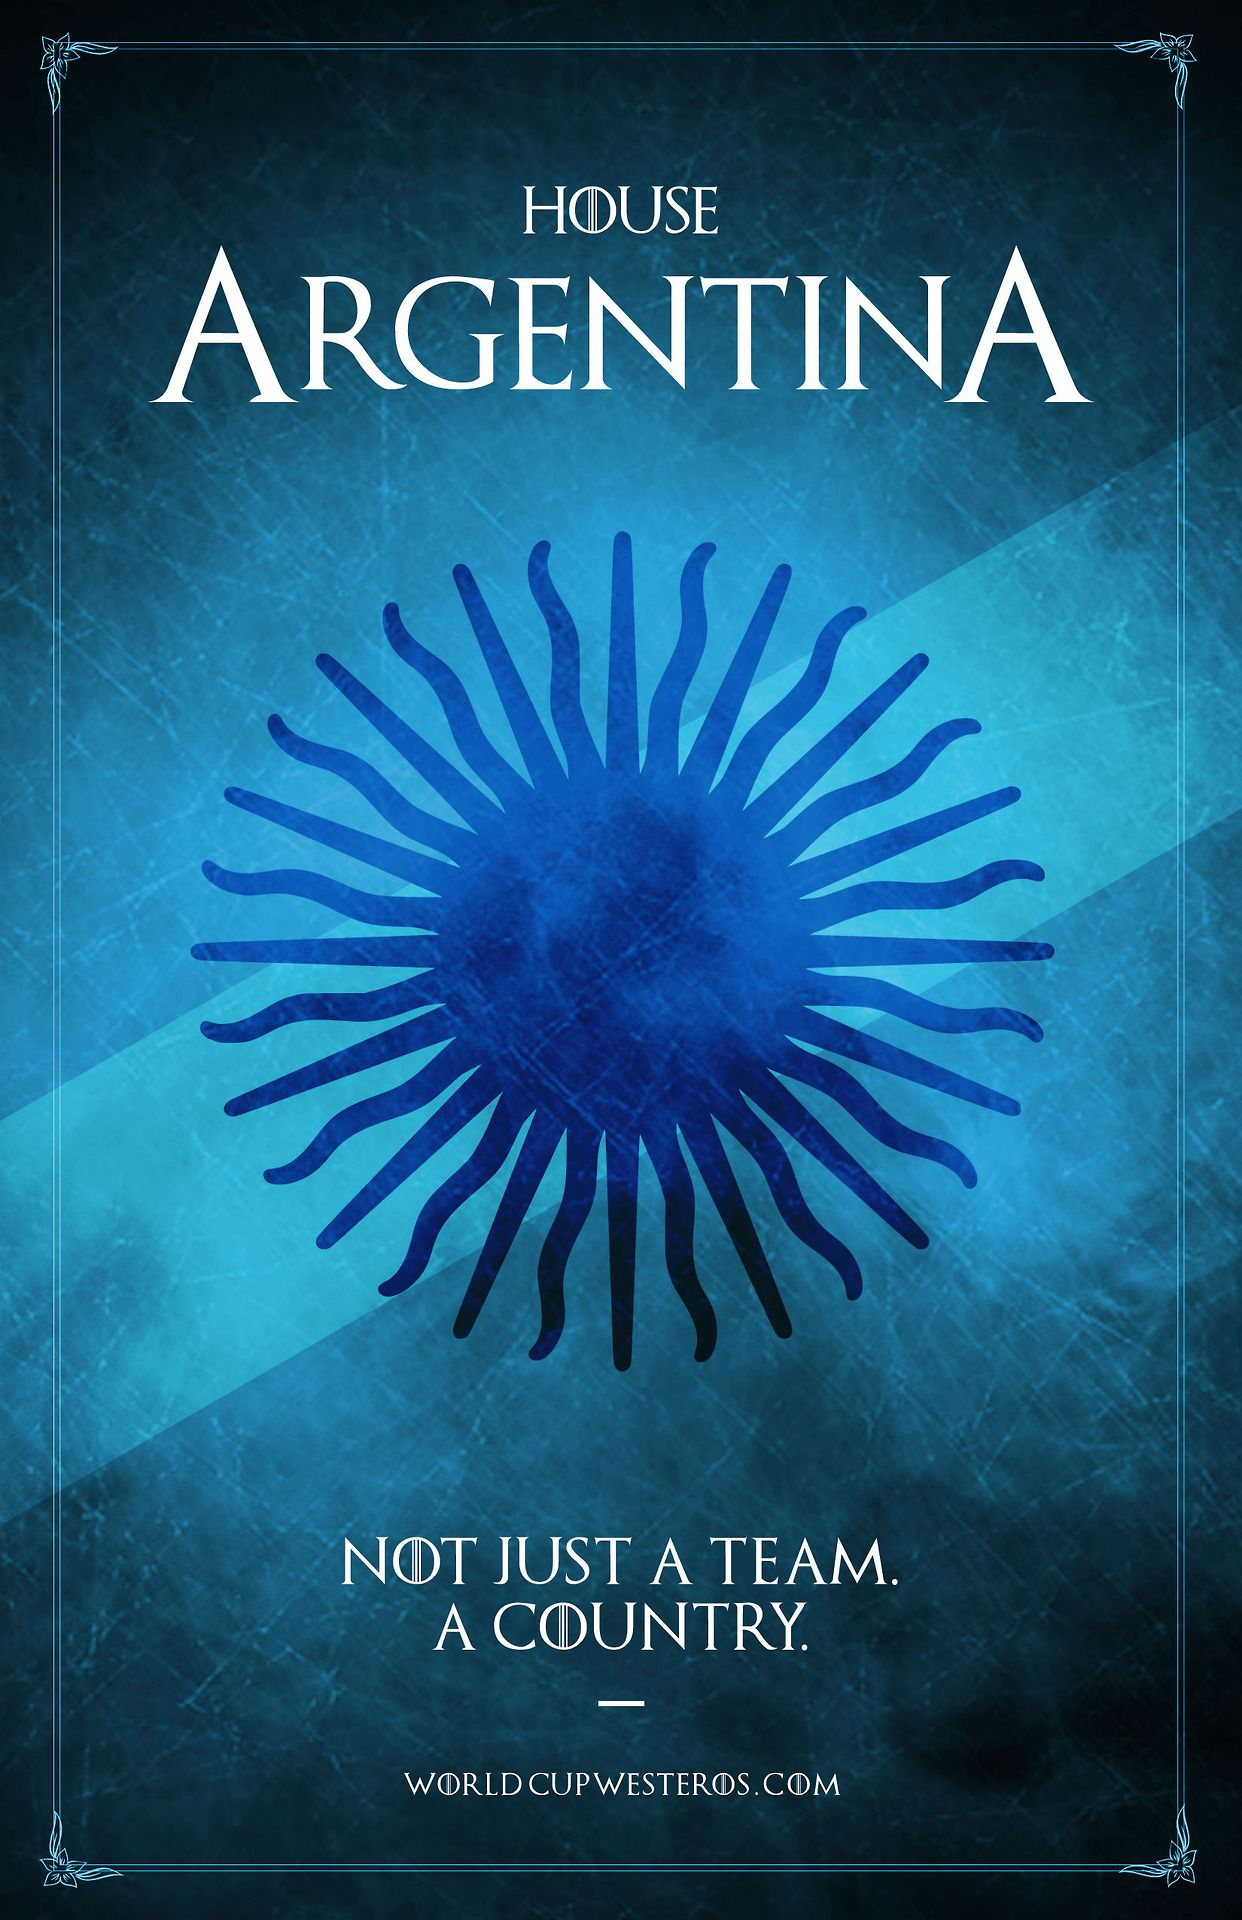 Any ideas for a good conclusion for an essay about Argentina?